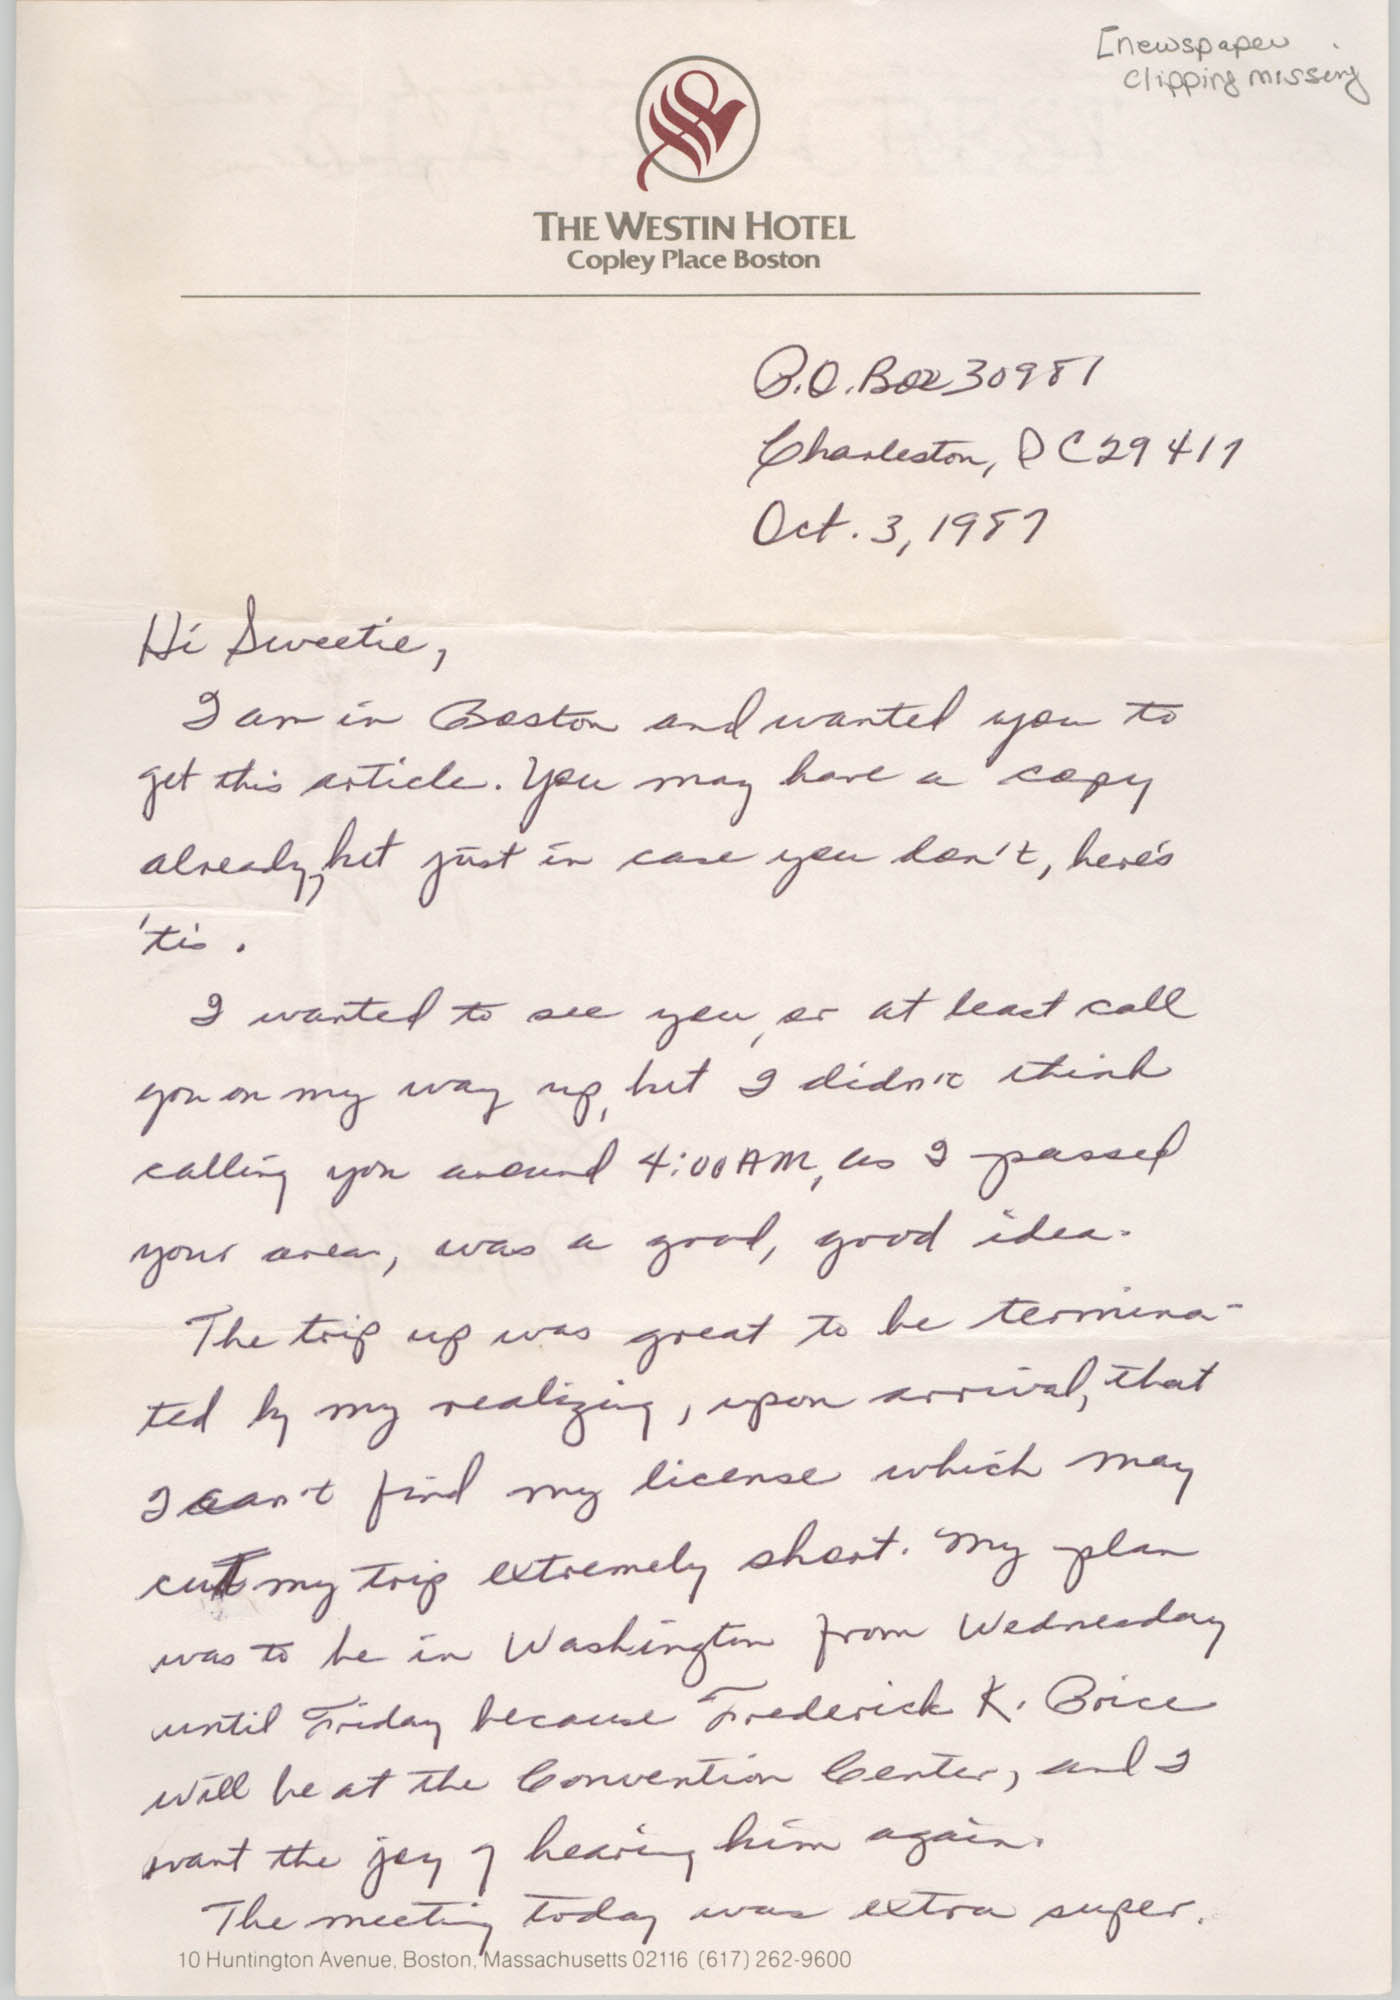 Letter from Mildred Carr to Millicent Brown, October 3, 1987